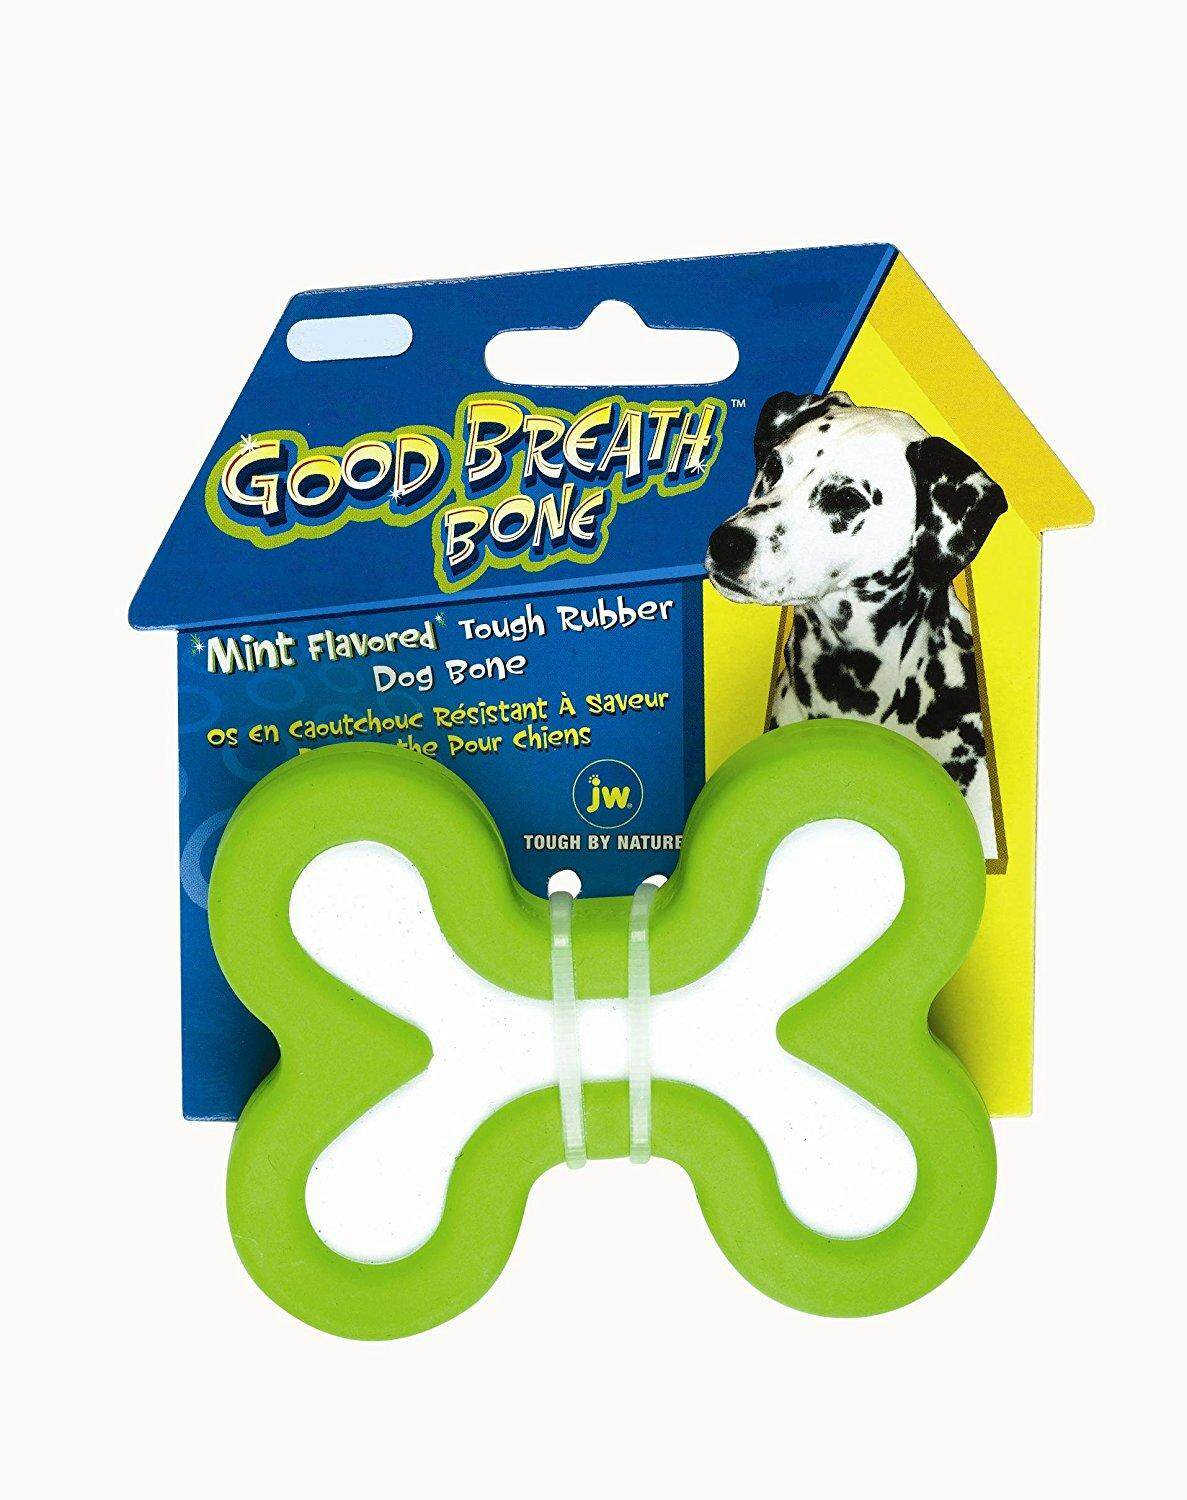 [JW PET TOYS] Good Breath Bone Durable Natural Rubber Dog Solid Rubber Toy - Medium